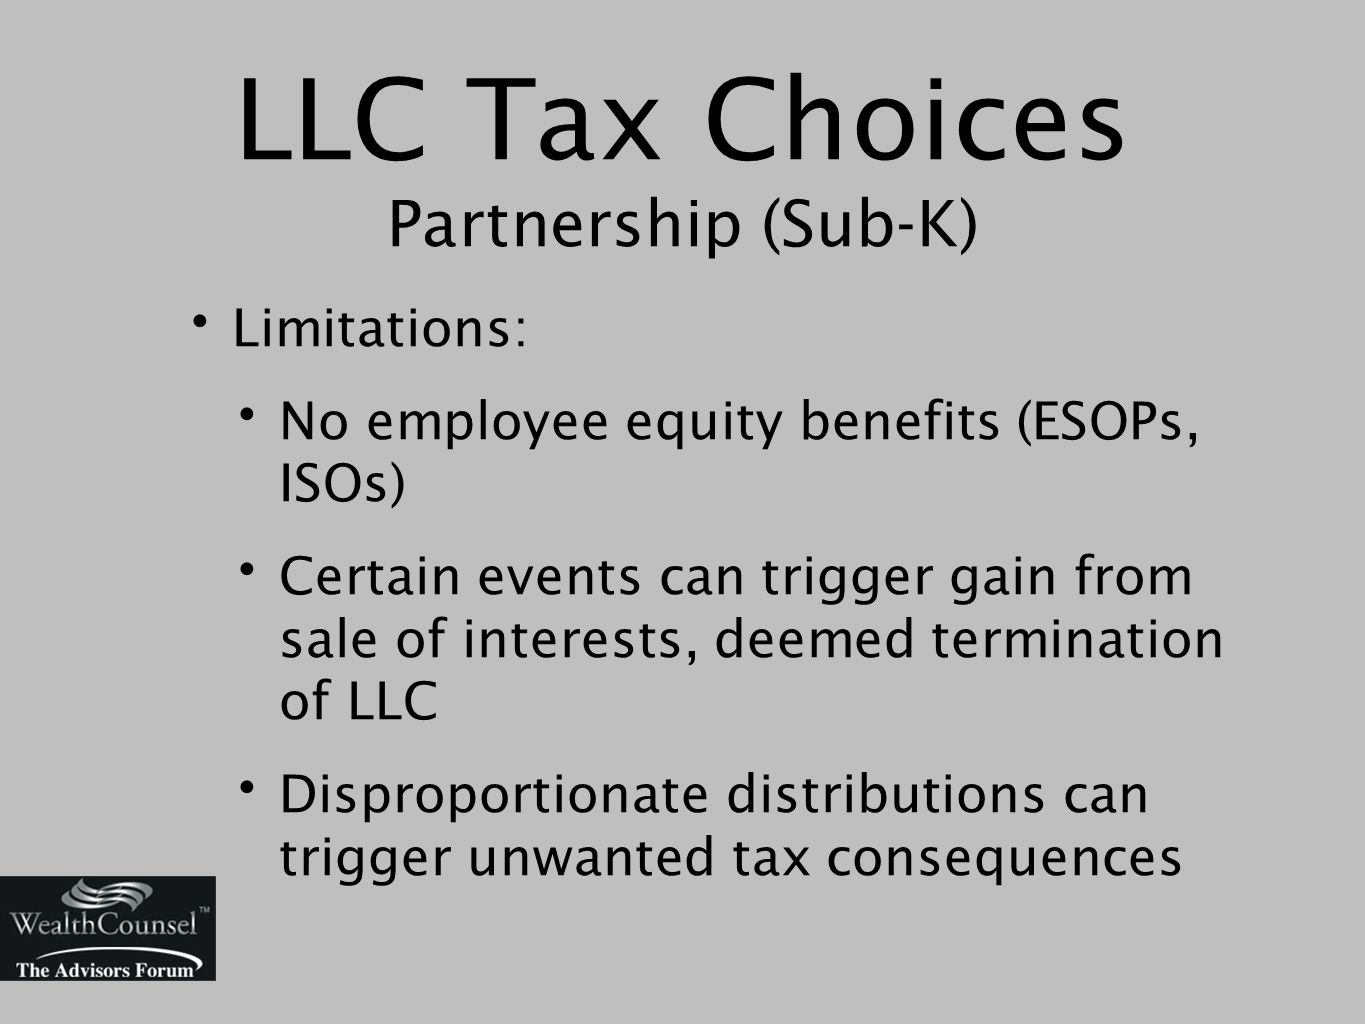 LLC Tax Choices Partnership (Sub-K) Limitations: No employee equity benefits (ESOPs, ISOs) Certain events can trigger gain from sale of interests, deemed termination of LLC Disproportionate distributions can trigger unwanted tax consequences